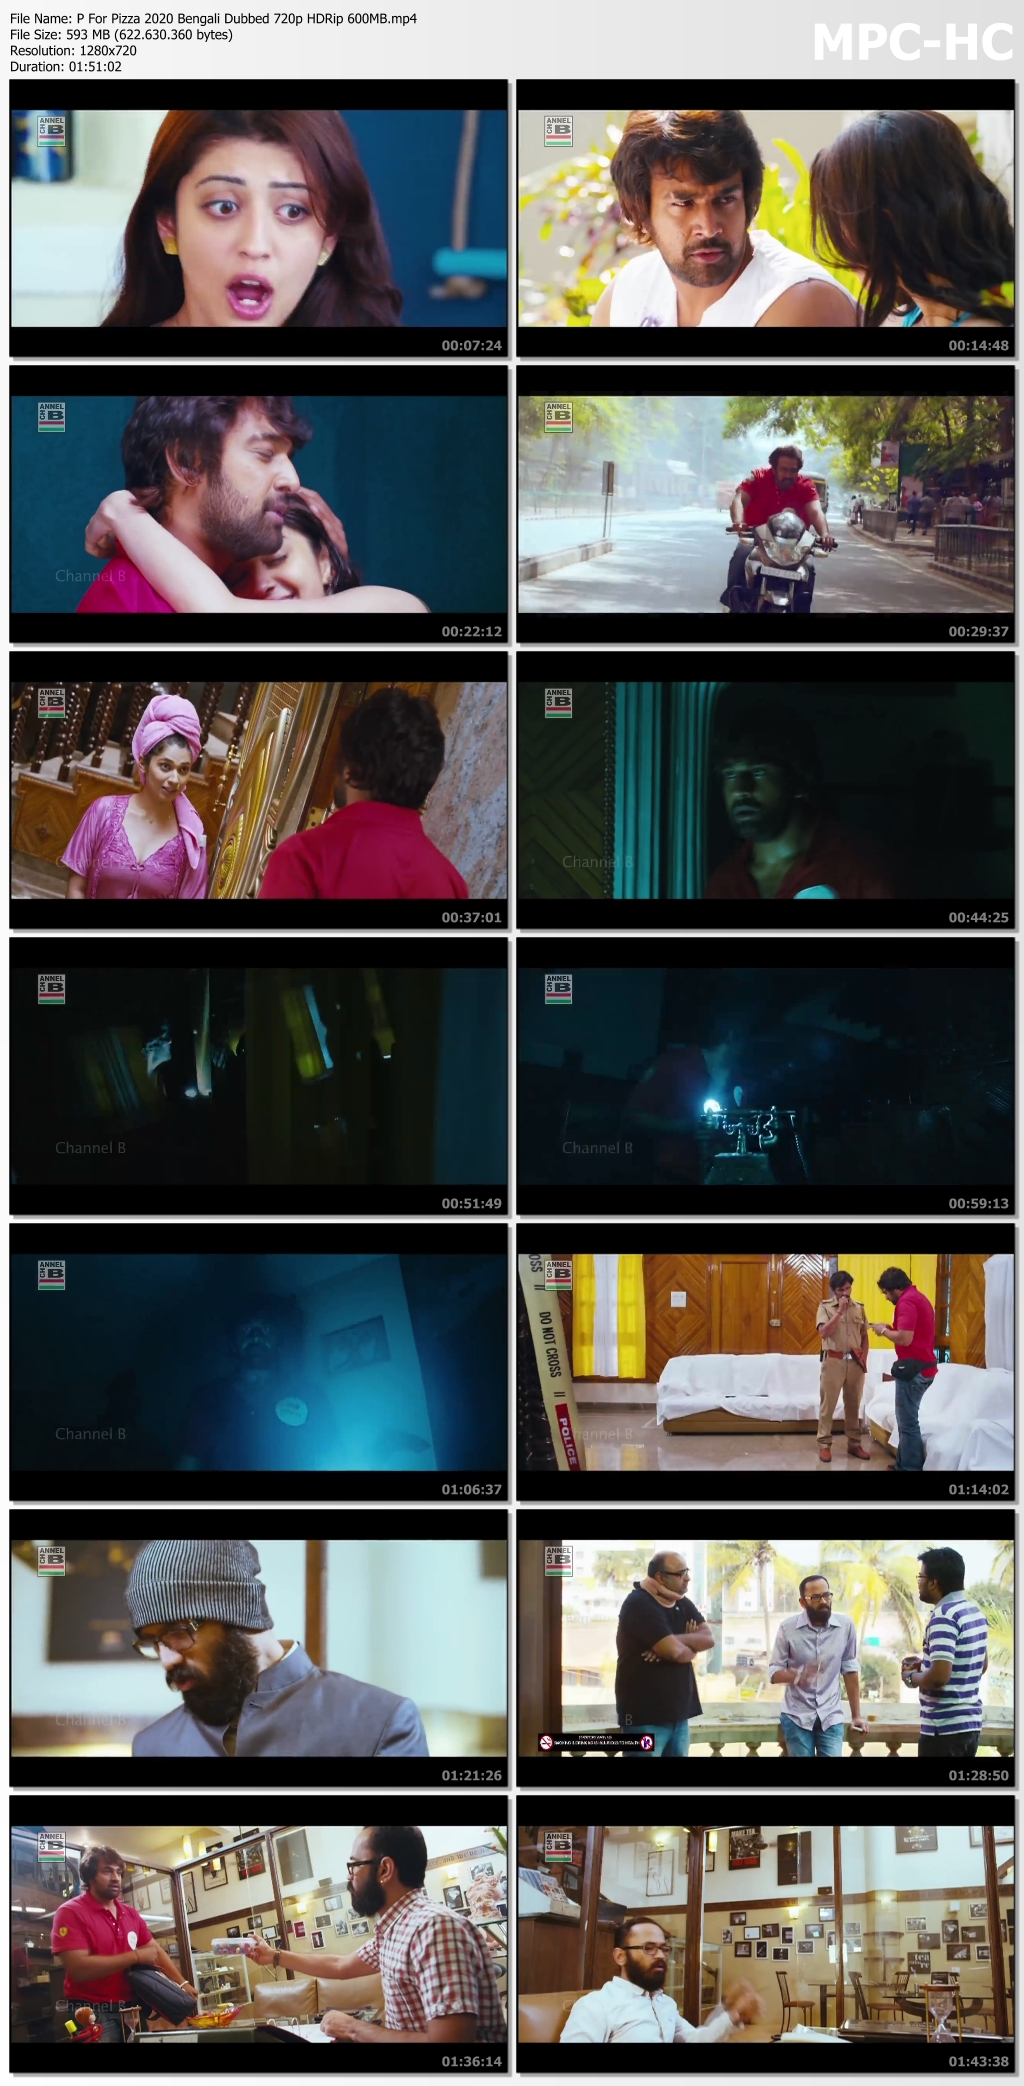 P-For-Pizza-2020-Bengali-Dubbed-720p-HDRip-600-MB-mp4-thumbs